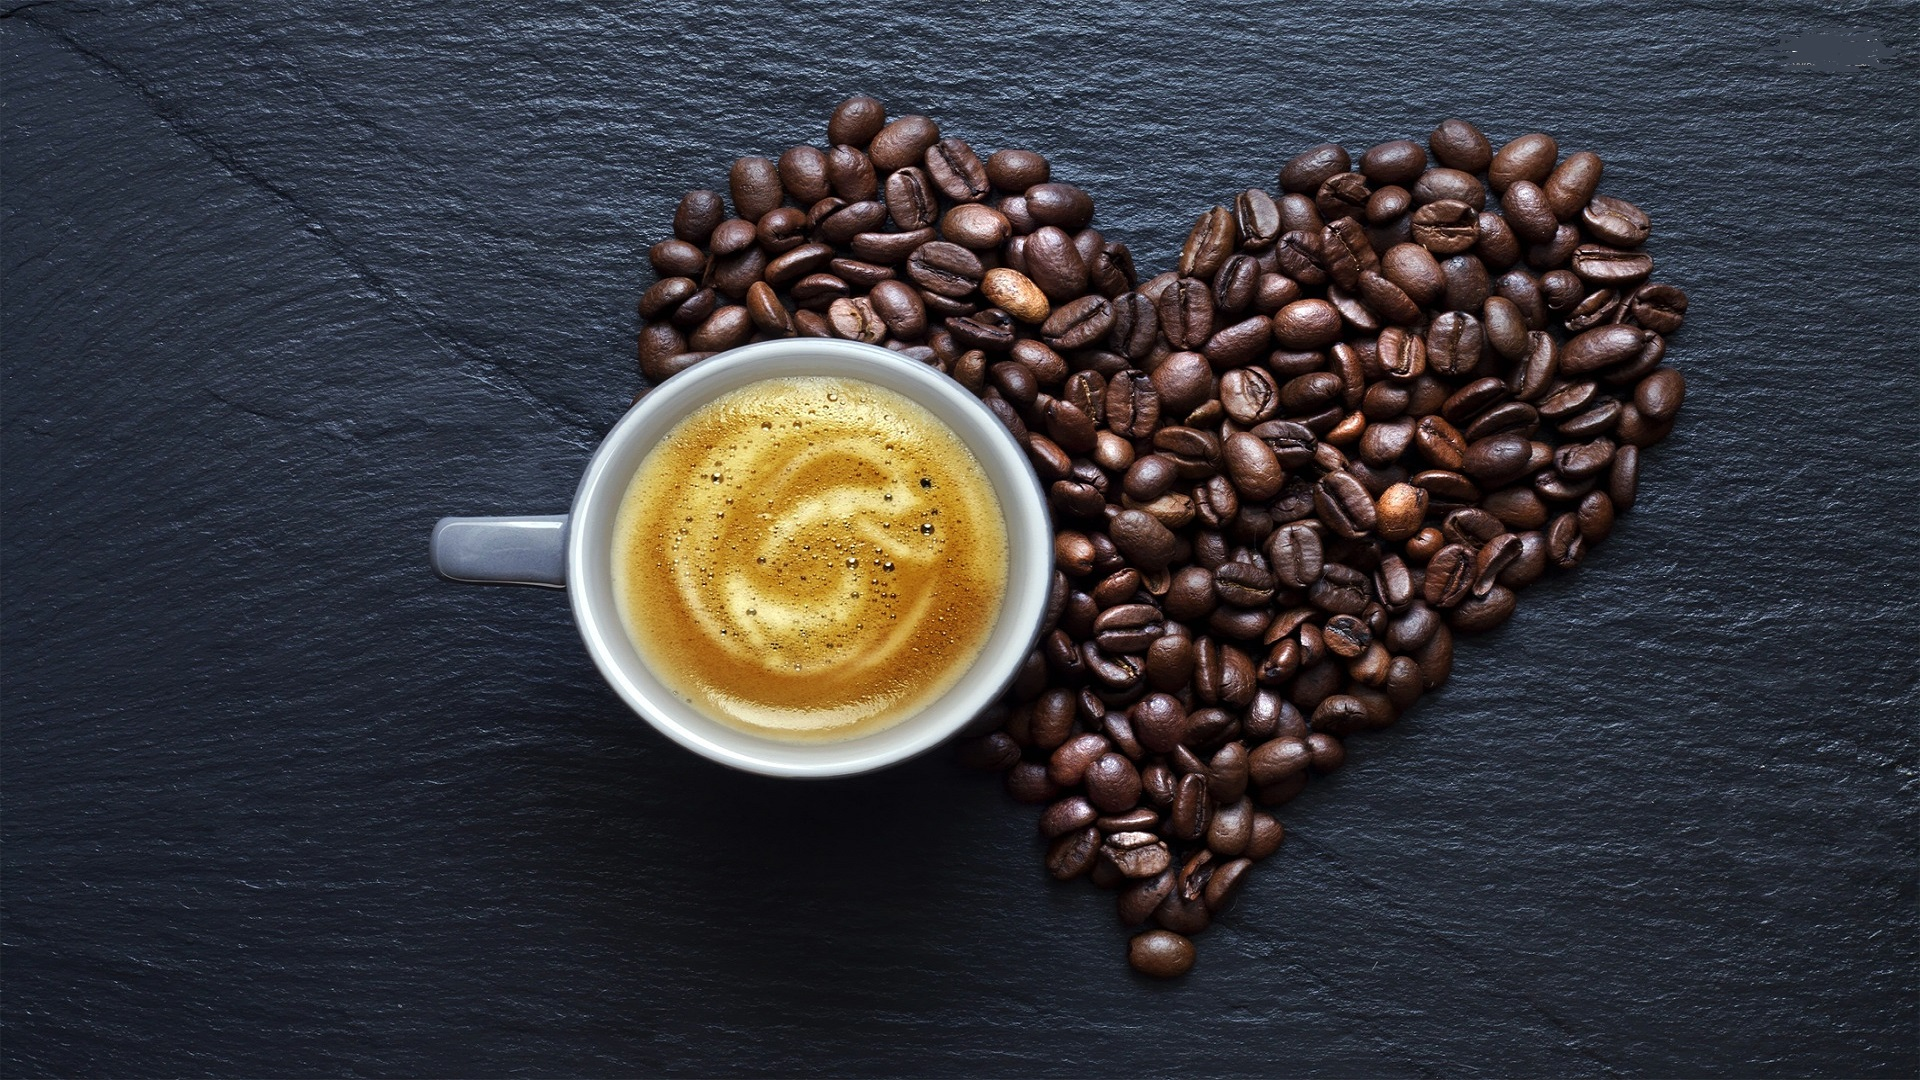 Coffee Lovers Love Hd Wallpapers: Love-for-coffee-free-hd-wallpapers-for-desktop